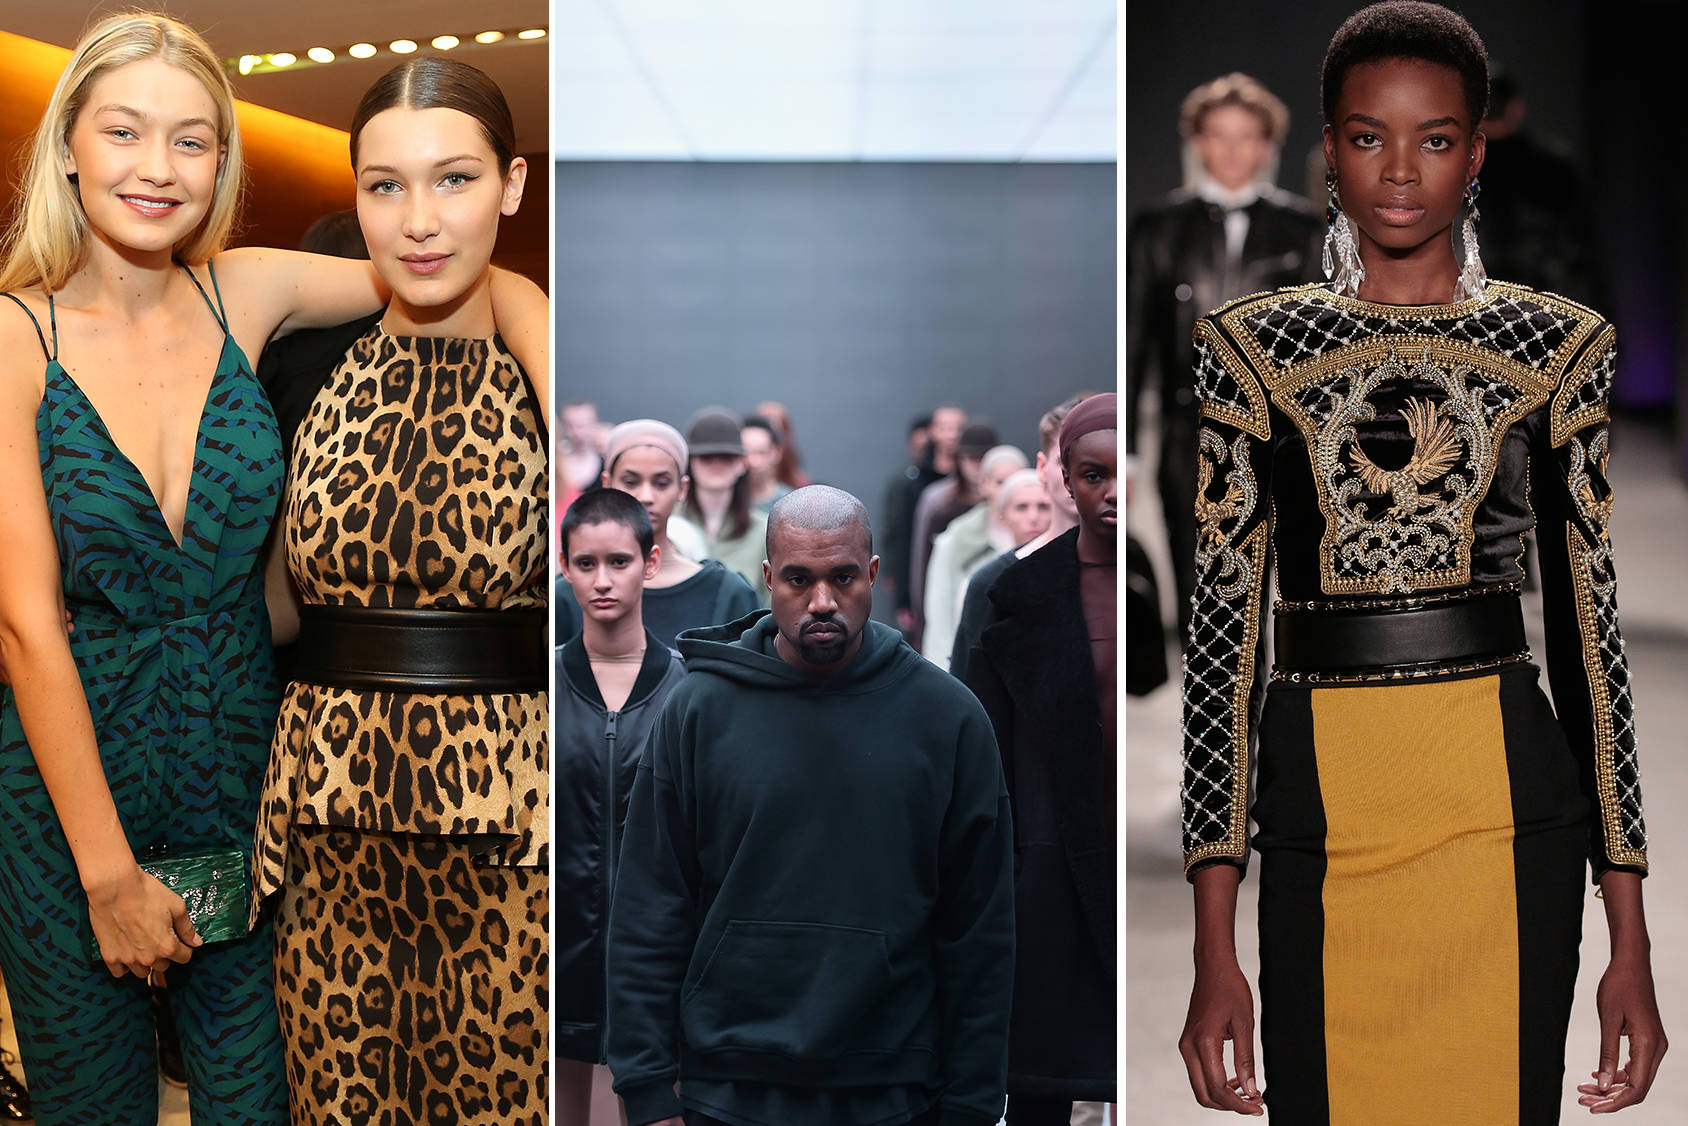 Gigi and Bella Hadid, Kanye West's Yeezy collection and the collaboration between Balmain and H&M were some of this year's biggest fashion stories, Getty Images.